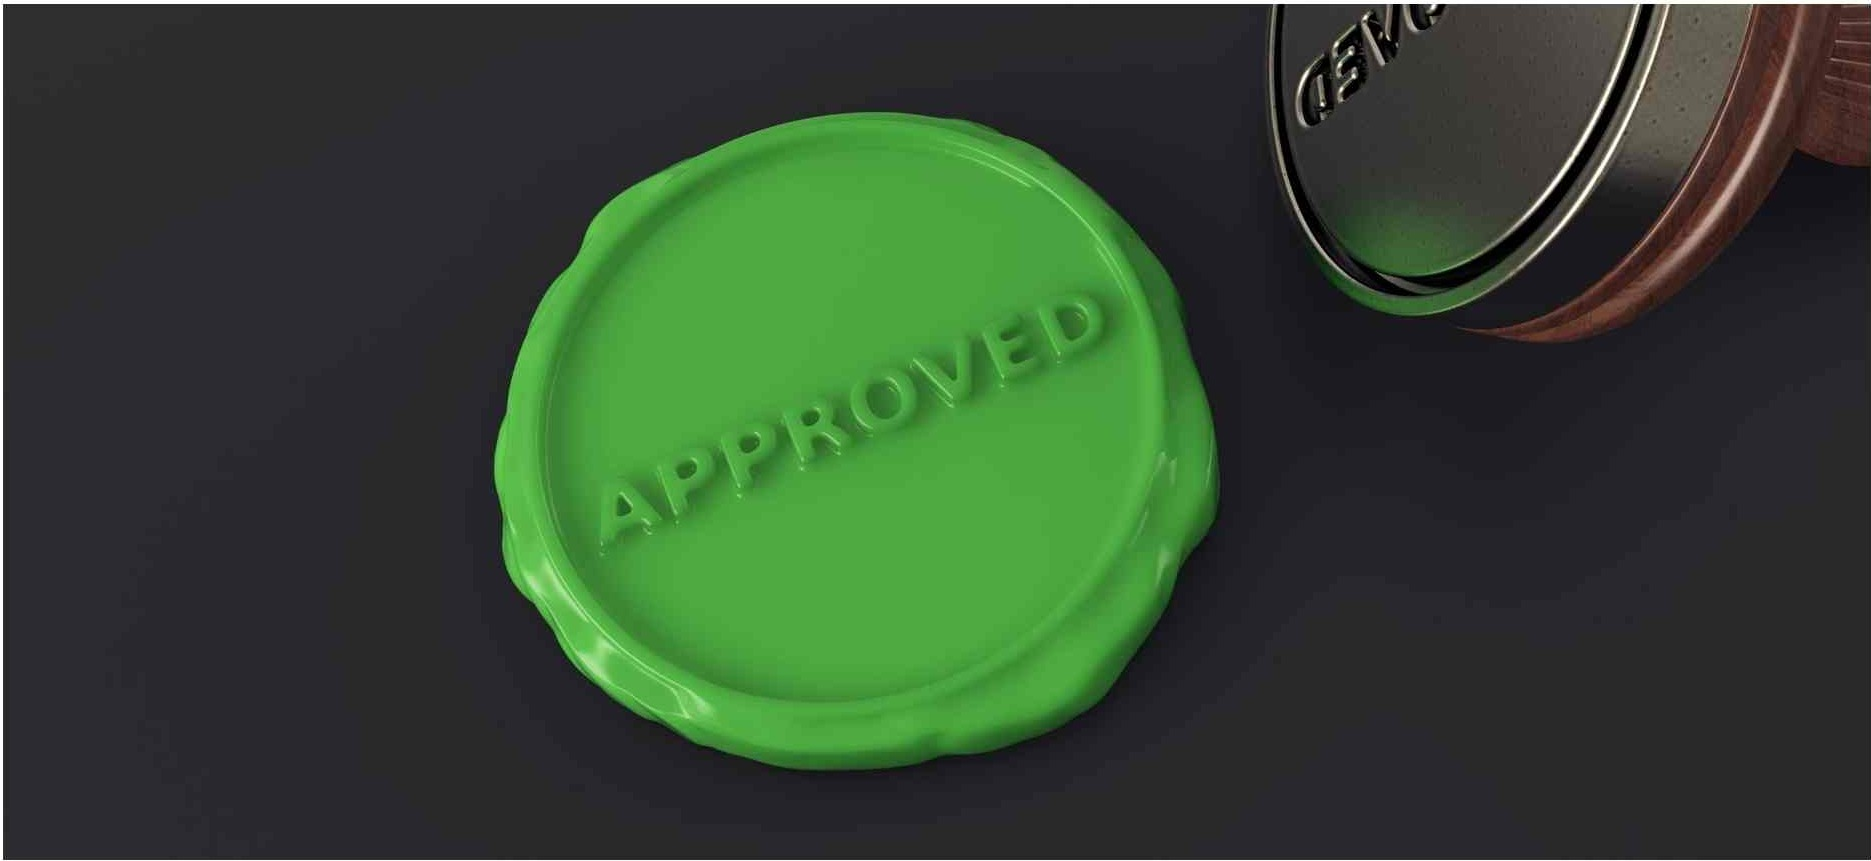 JCAHO Seal of Approval